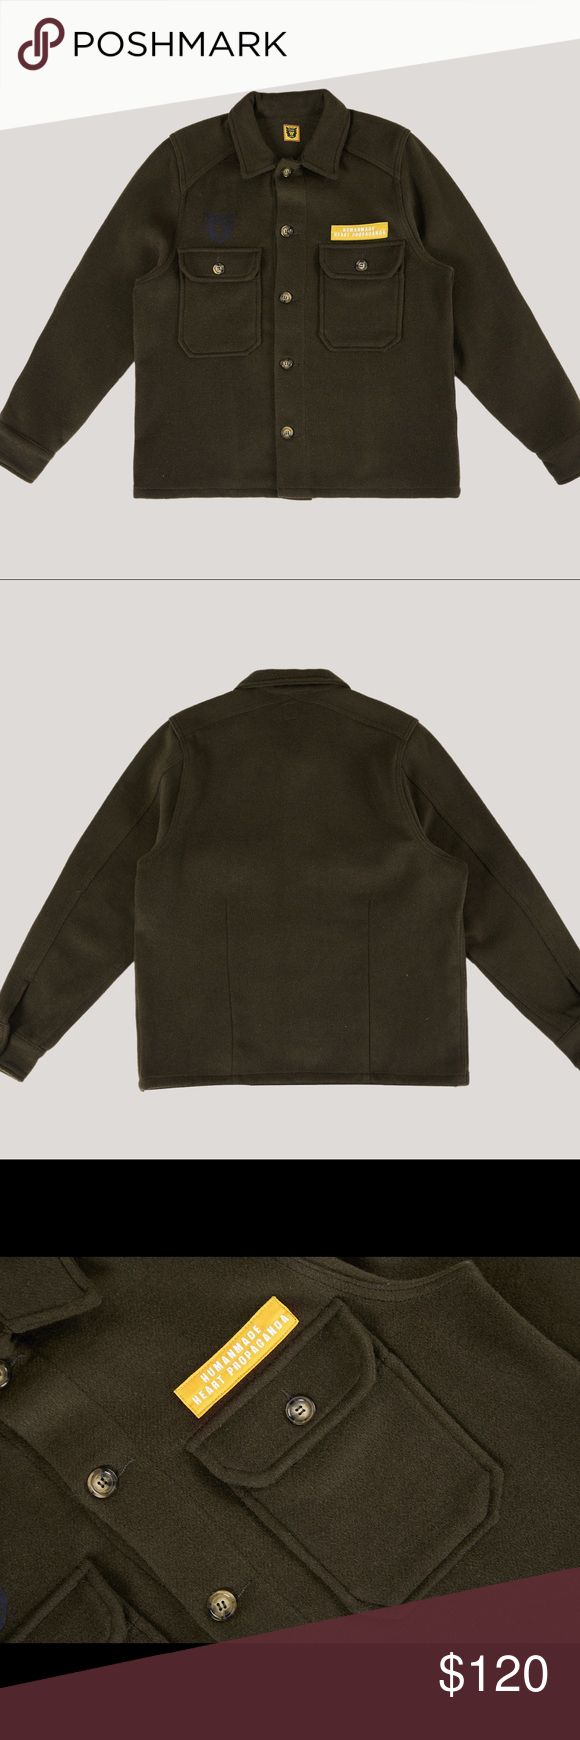 Human made Wool Military style Shirt Embroidered patch, printed logo Button down patch pockets  Wide, button down placket  75 % Wool 15% Polyester 5% Nylon 5% Acrylic Button Down Fastenings Classic Collar Neckline Made in china human made Shirts Casual Button Down Shirts